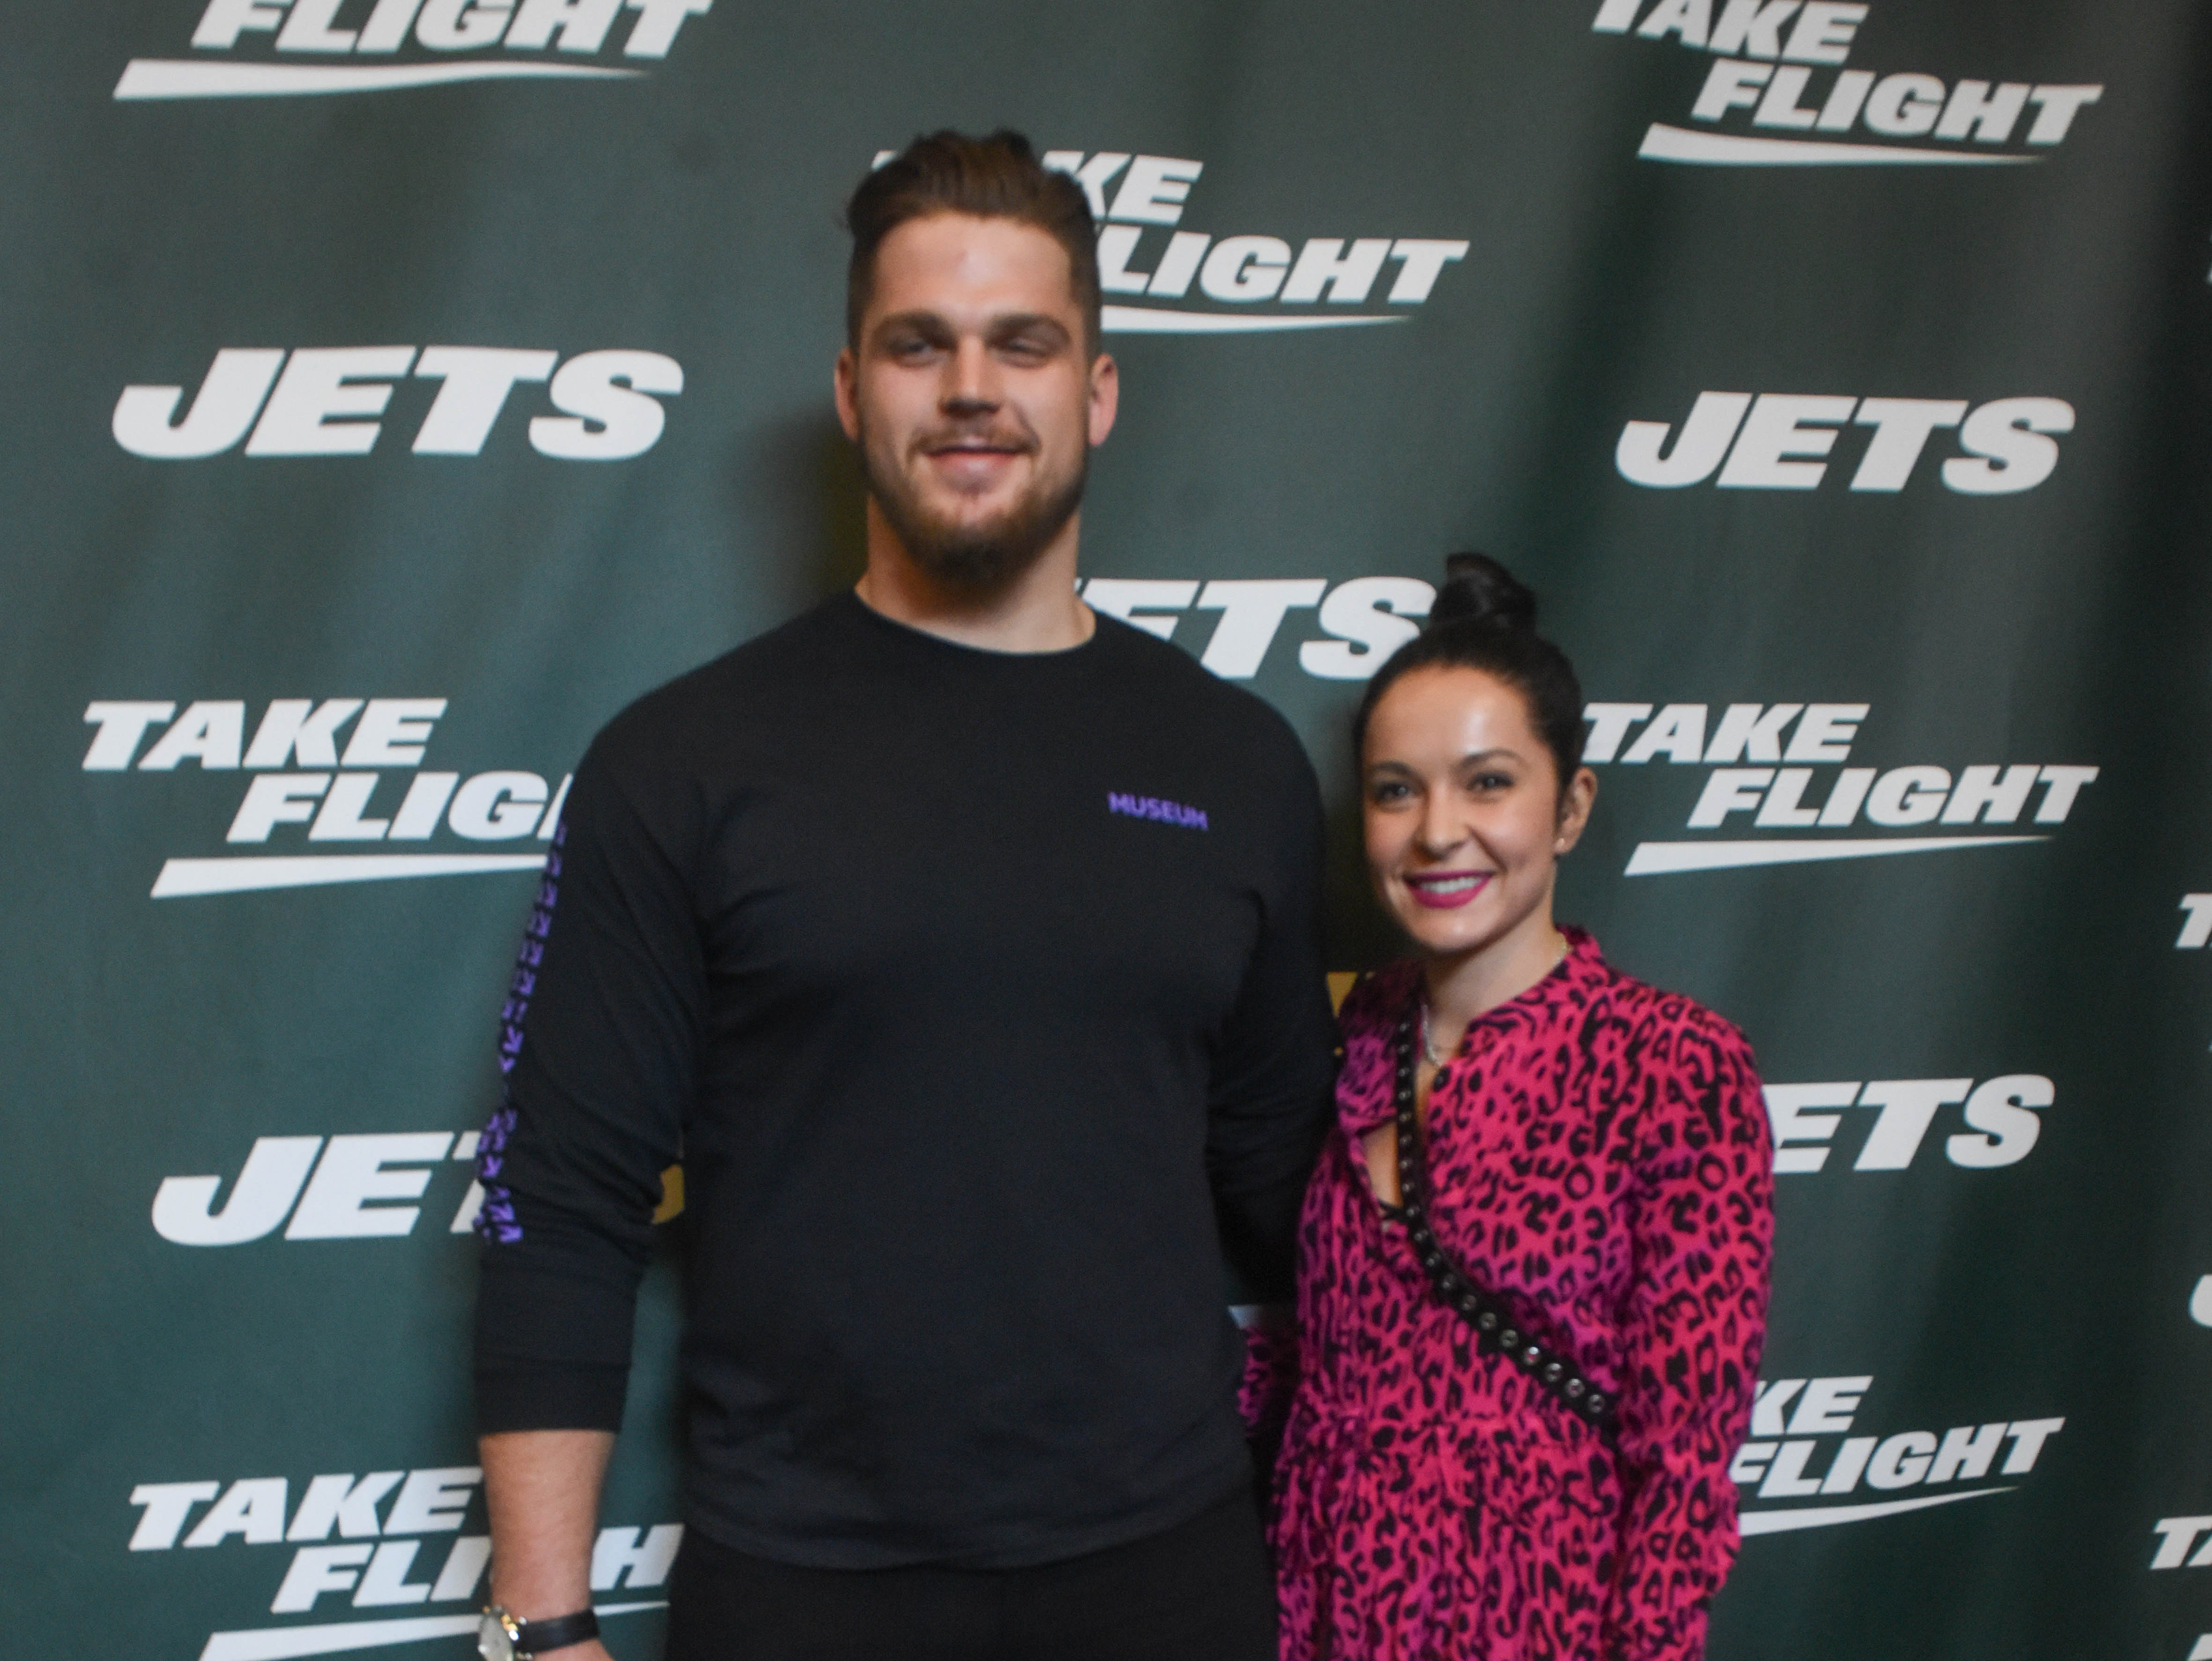 Jon Toth (NY Jets) and guest. The NY Jets unveiled their new football uniforms with an event hosted by JB Smoove at Gotham Hall in New York. 04/05/2019